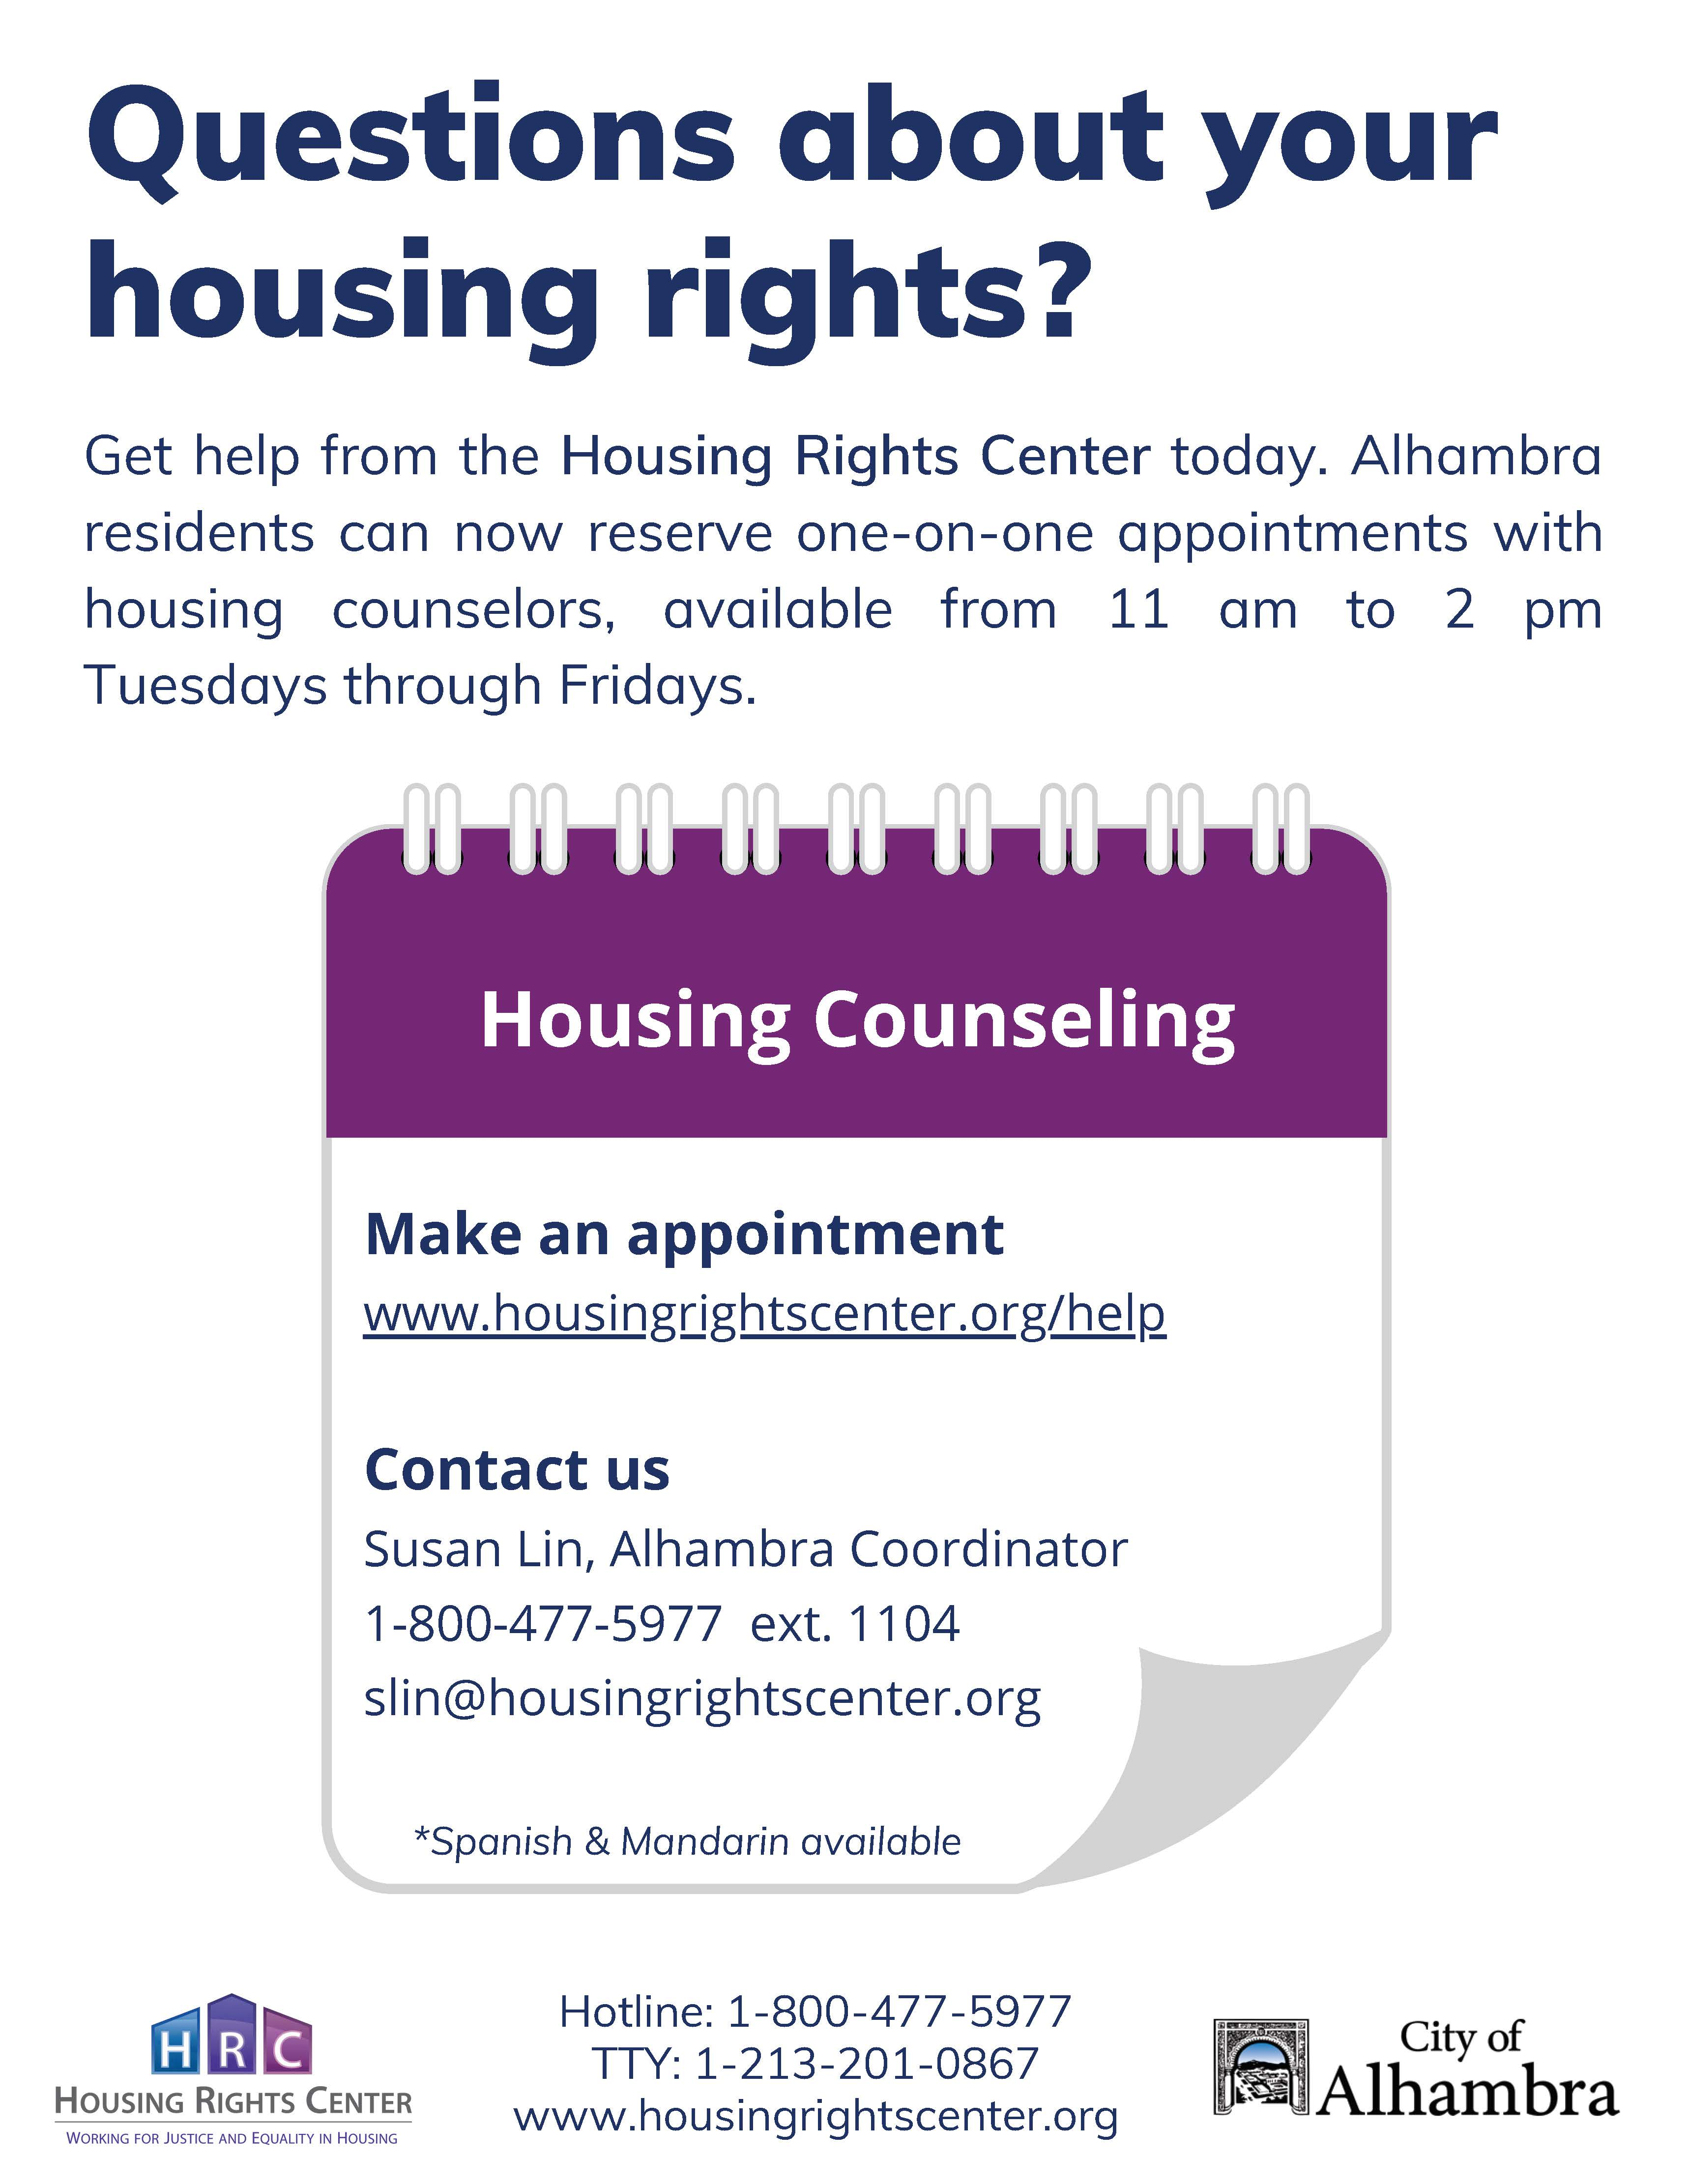 Housing rights appointment info in English